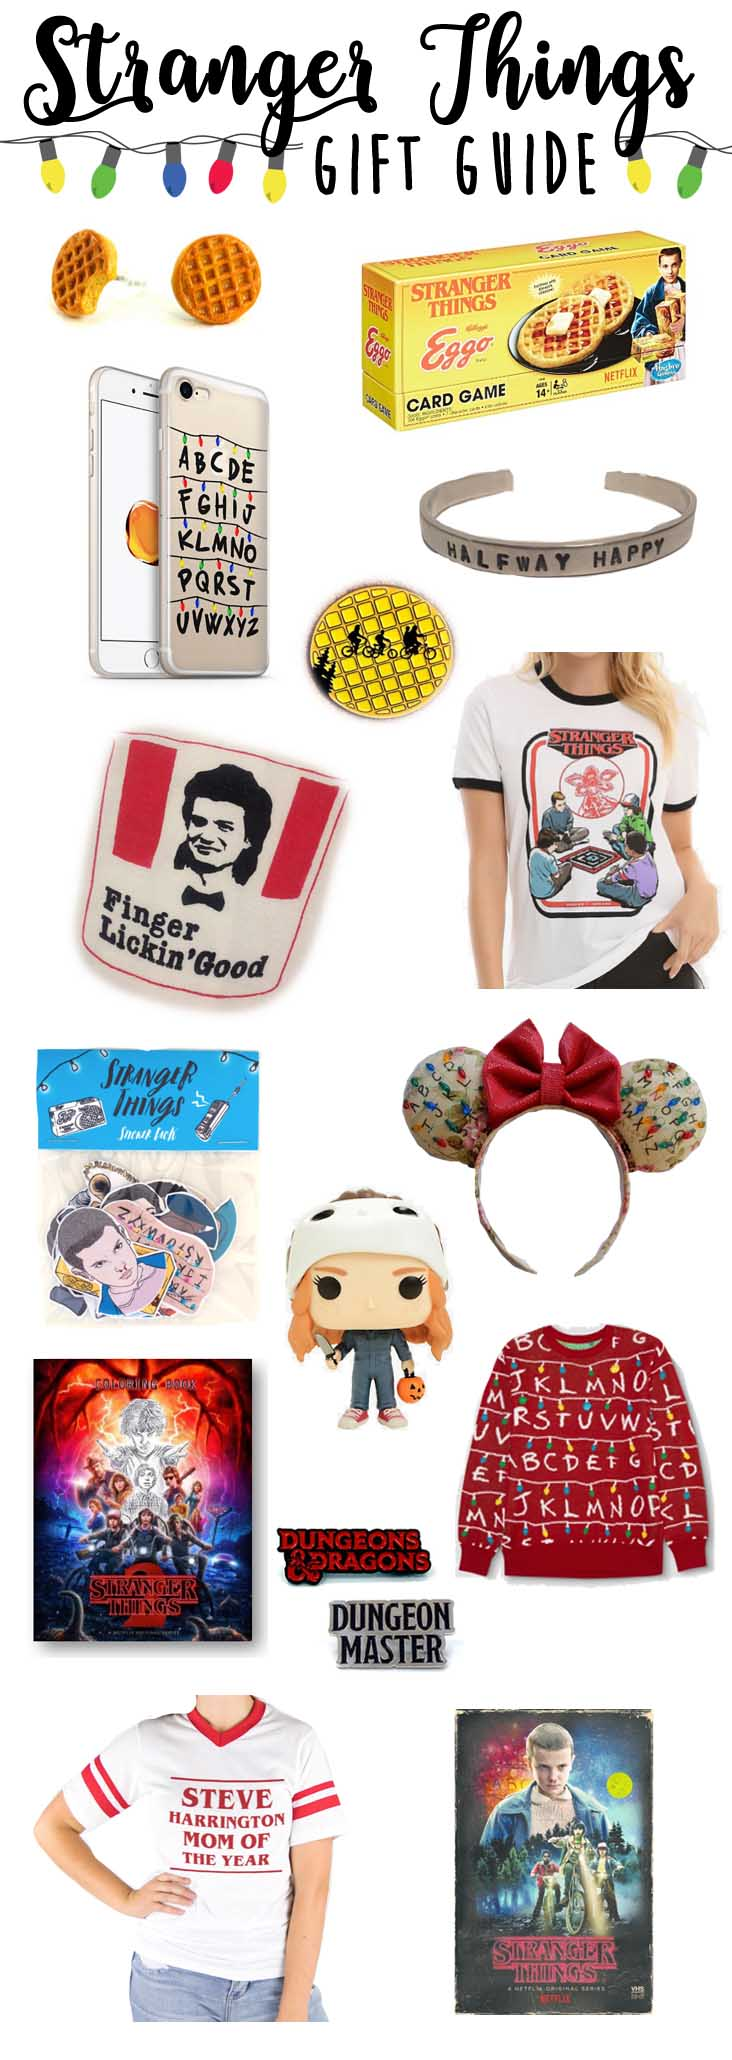 Gift ideas for the Stranger Things fan